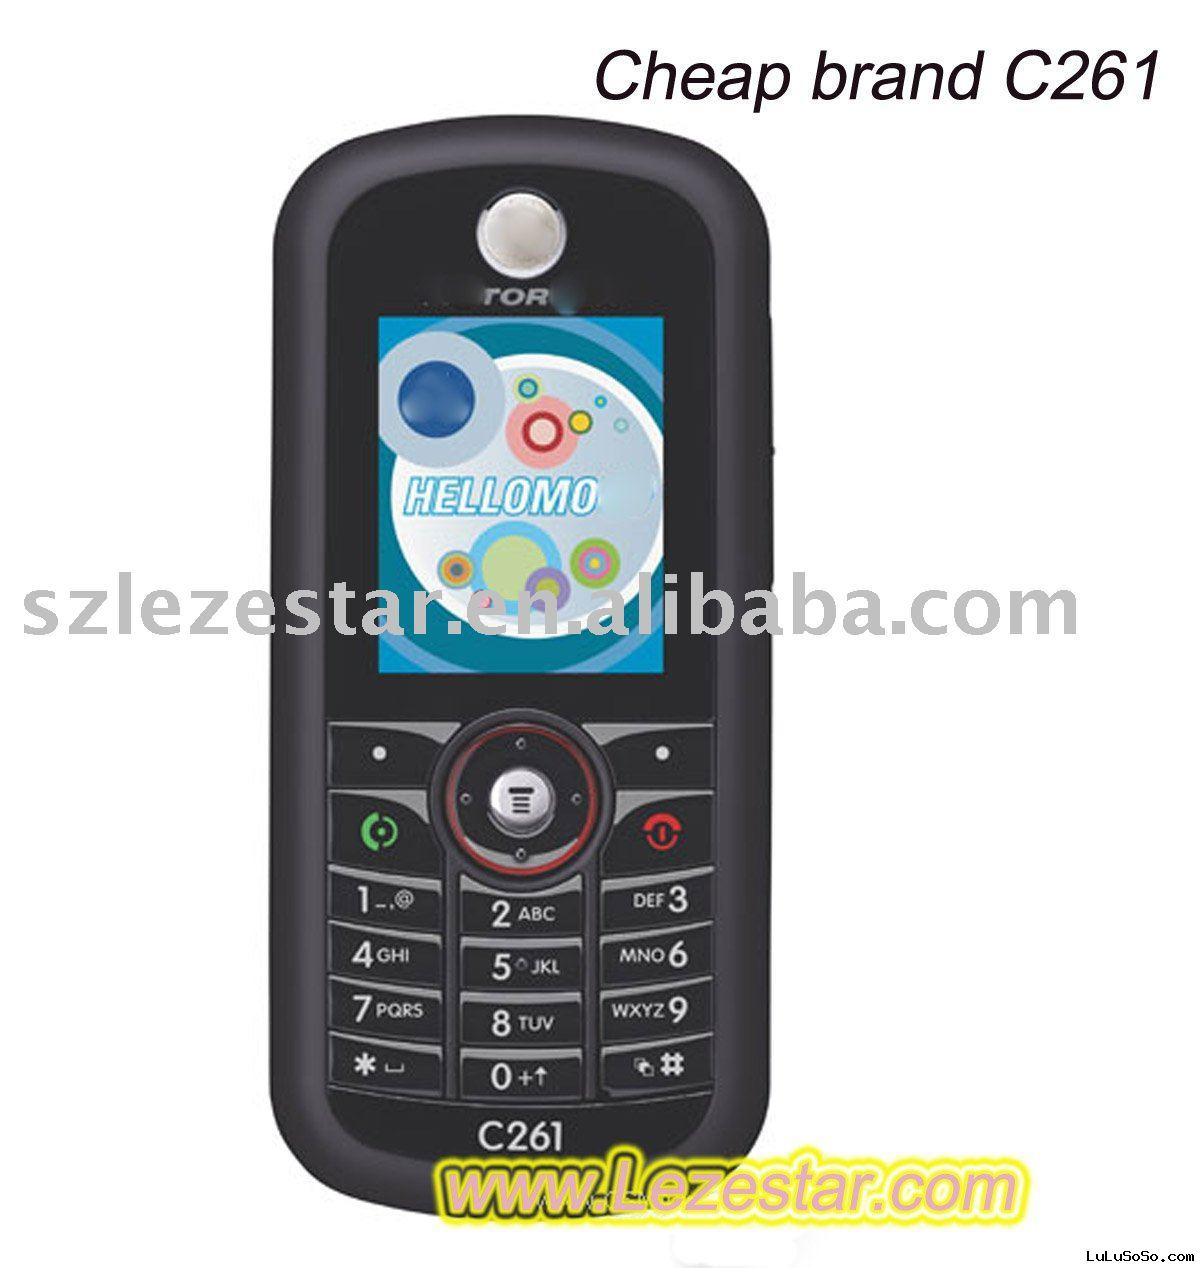 cheap cell phone M C261 under US$15